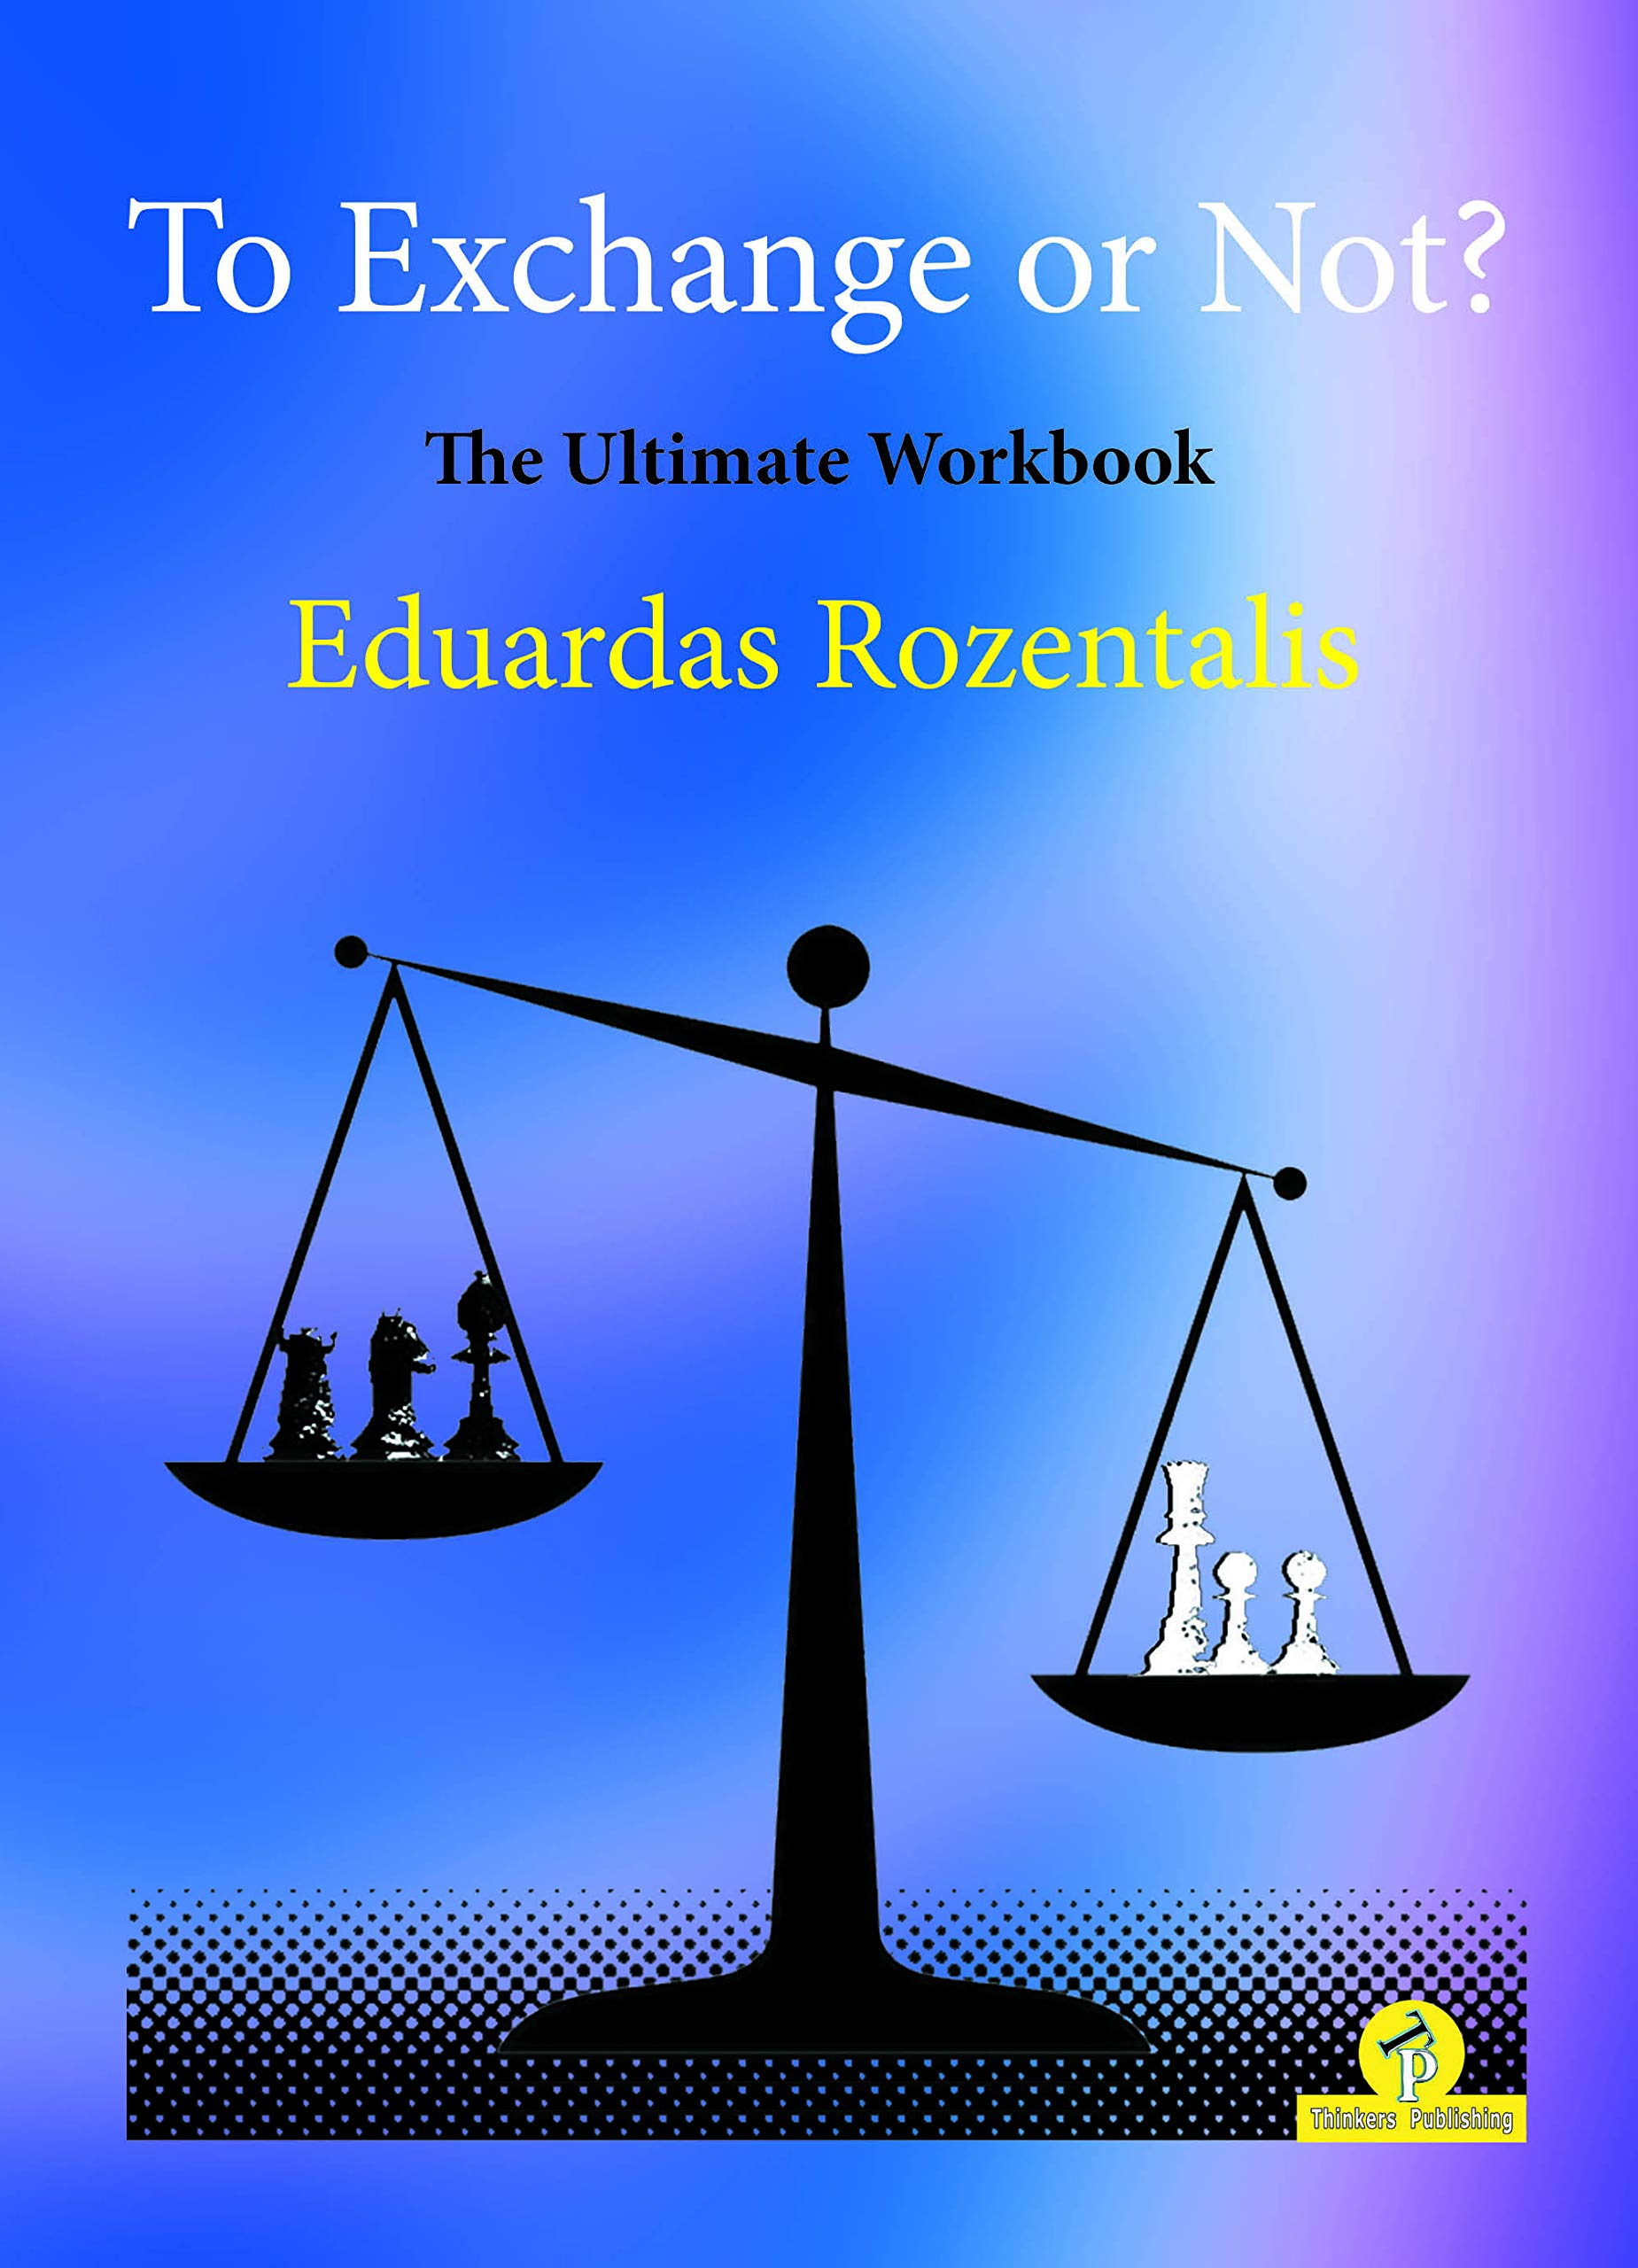 To Exchange or Not?, Eduardas Rozentalis, Thinker's Publishing, 8th December 2020, ISBN-13 : 978-9492510945